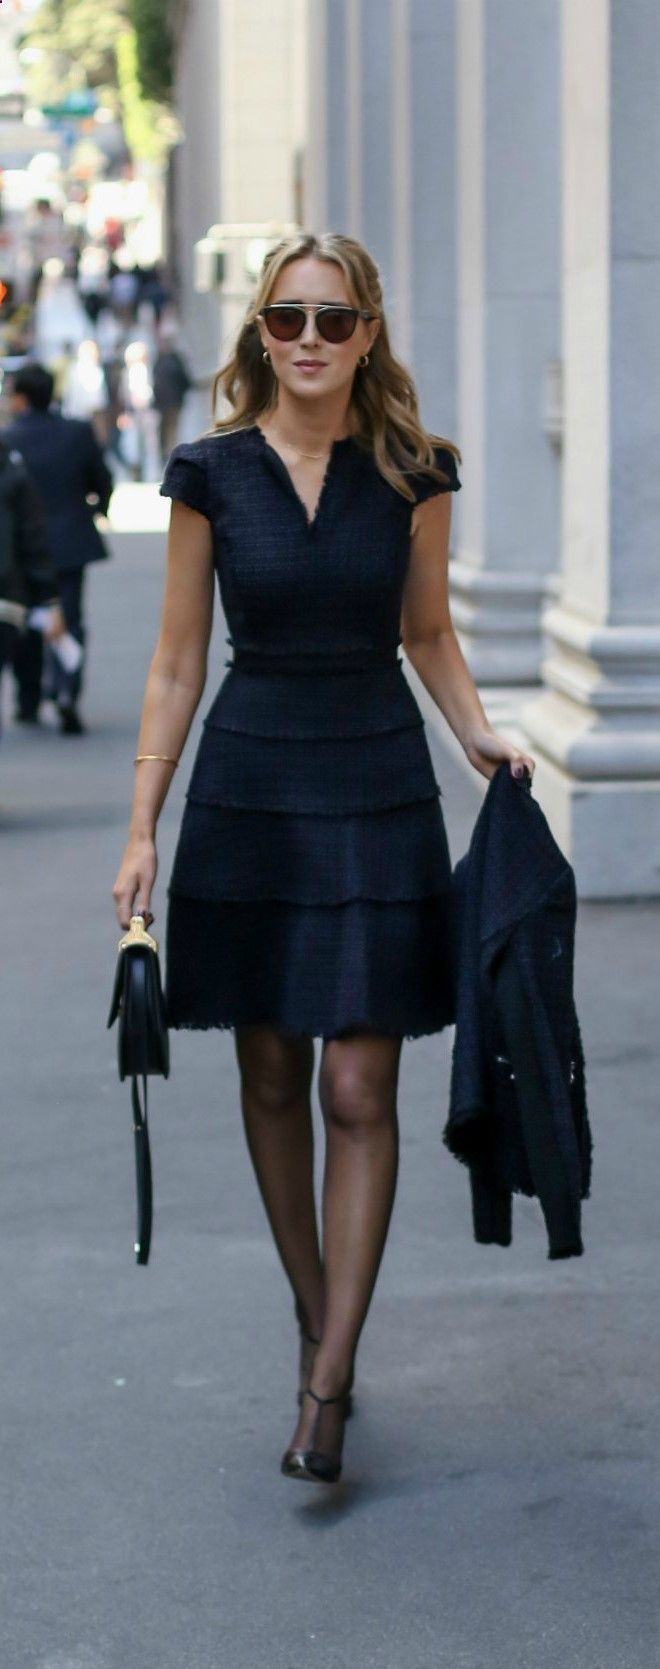 Black and navy tweed fit and flare short sleeve dress with coordinating suit jacket perfect for fall and winter business formal work events rebecca taylor, sjp collection, m2malletier